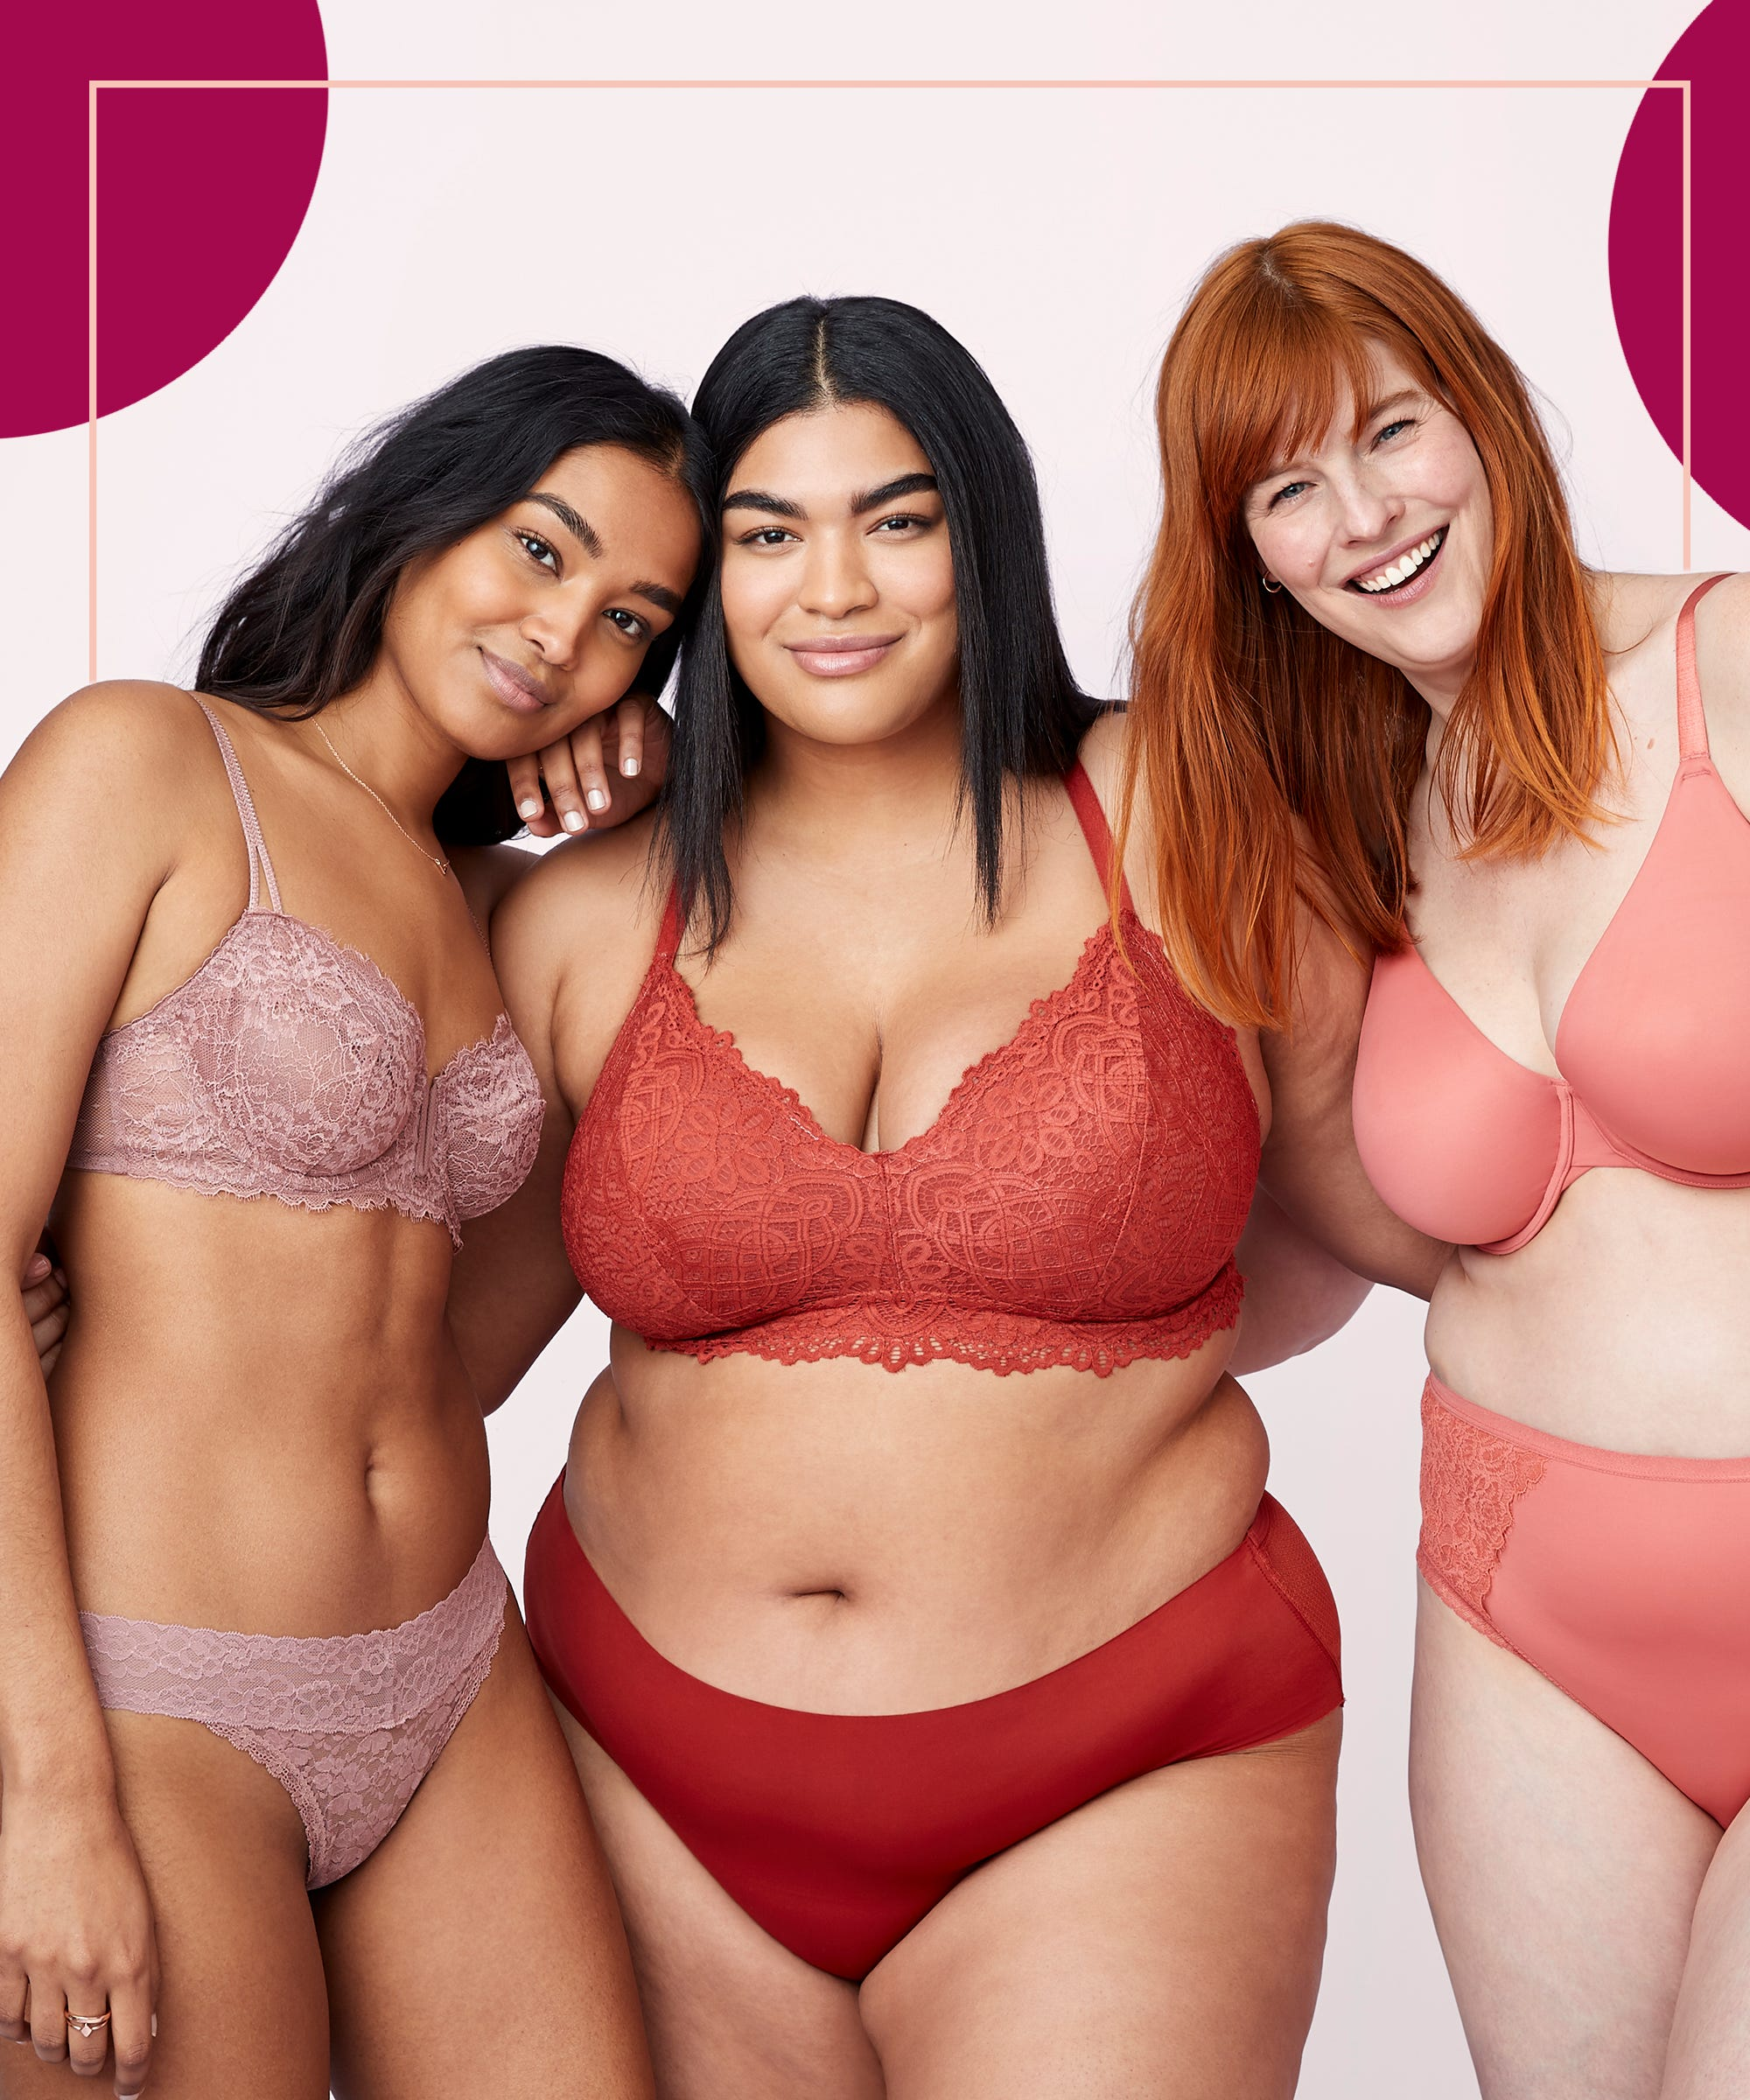 75f81c9656d Target Launches New Lingerie Lines For All Body Sizes